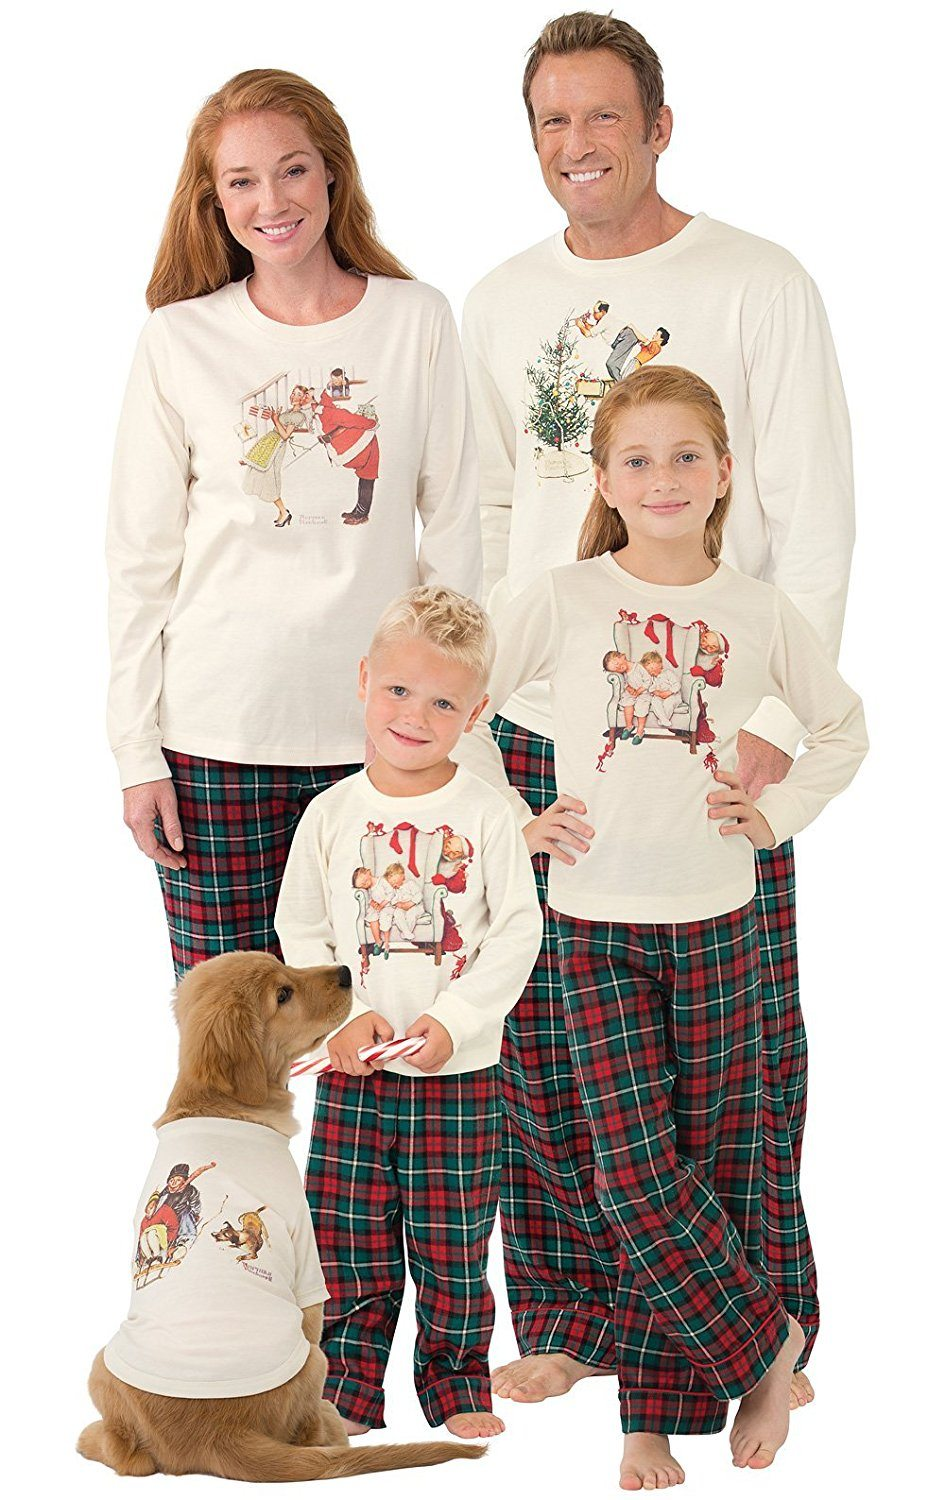 Matching Family Pajamas For The Holidays - Simplemost